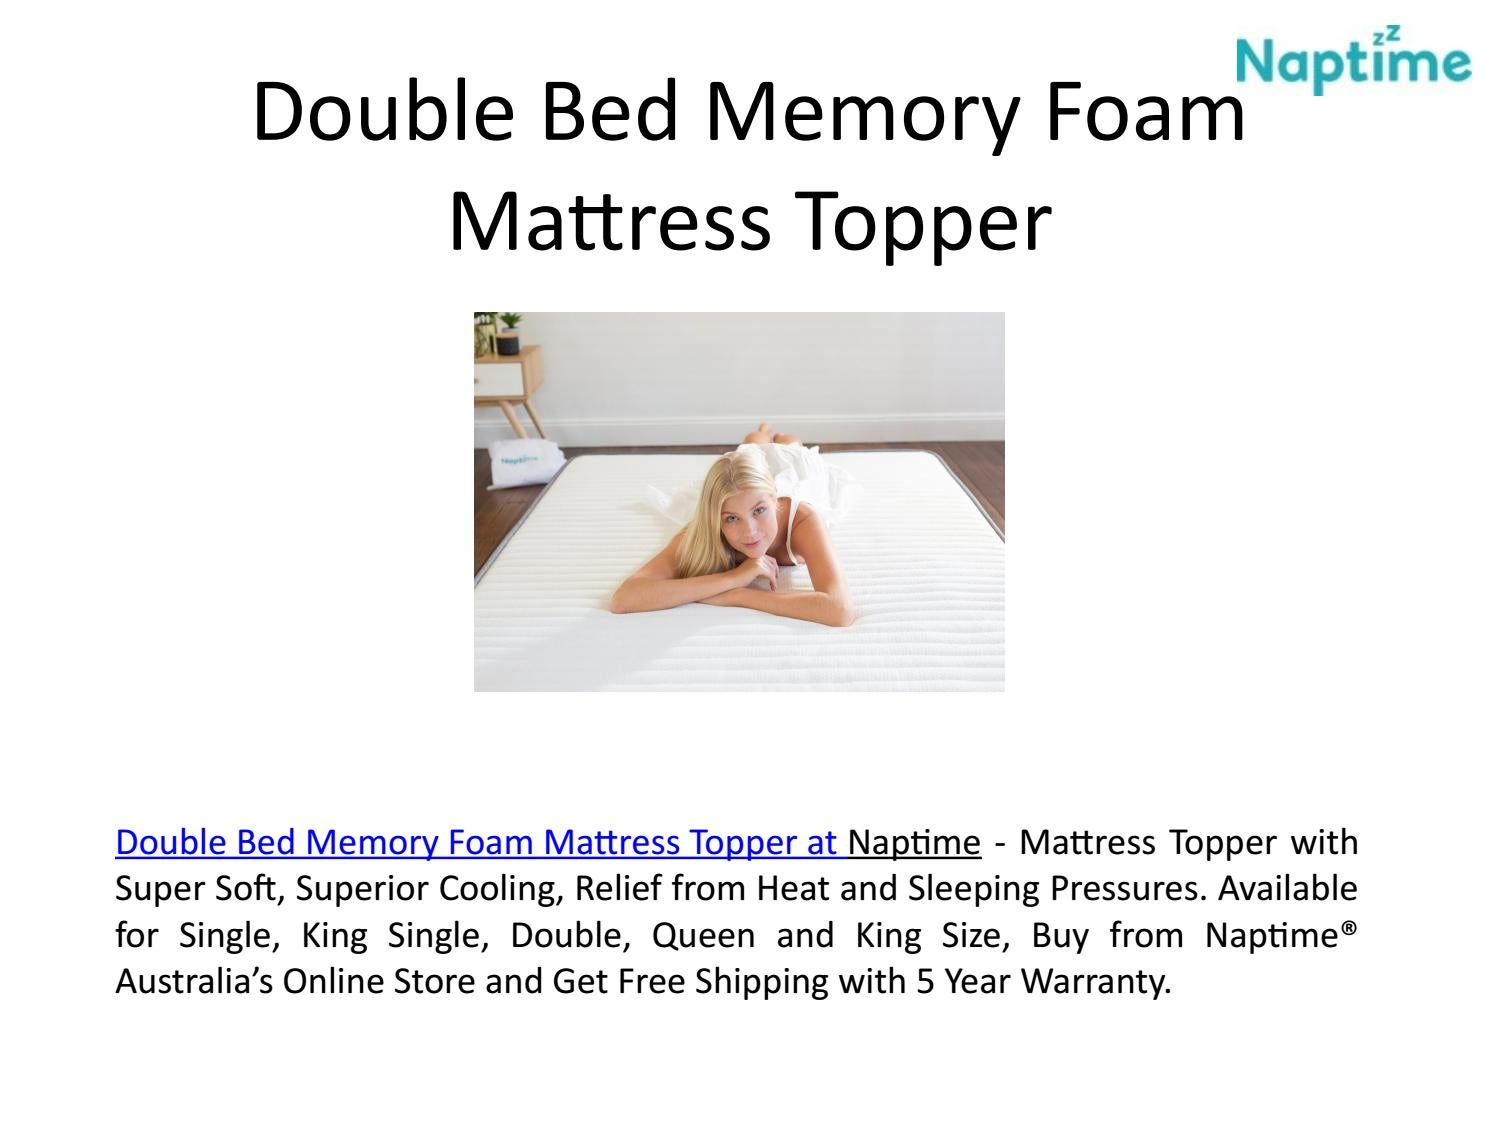 King Size Mattress Australia King Size Foam Mattress Topper At Naptime Australia By Naptime Issuu